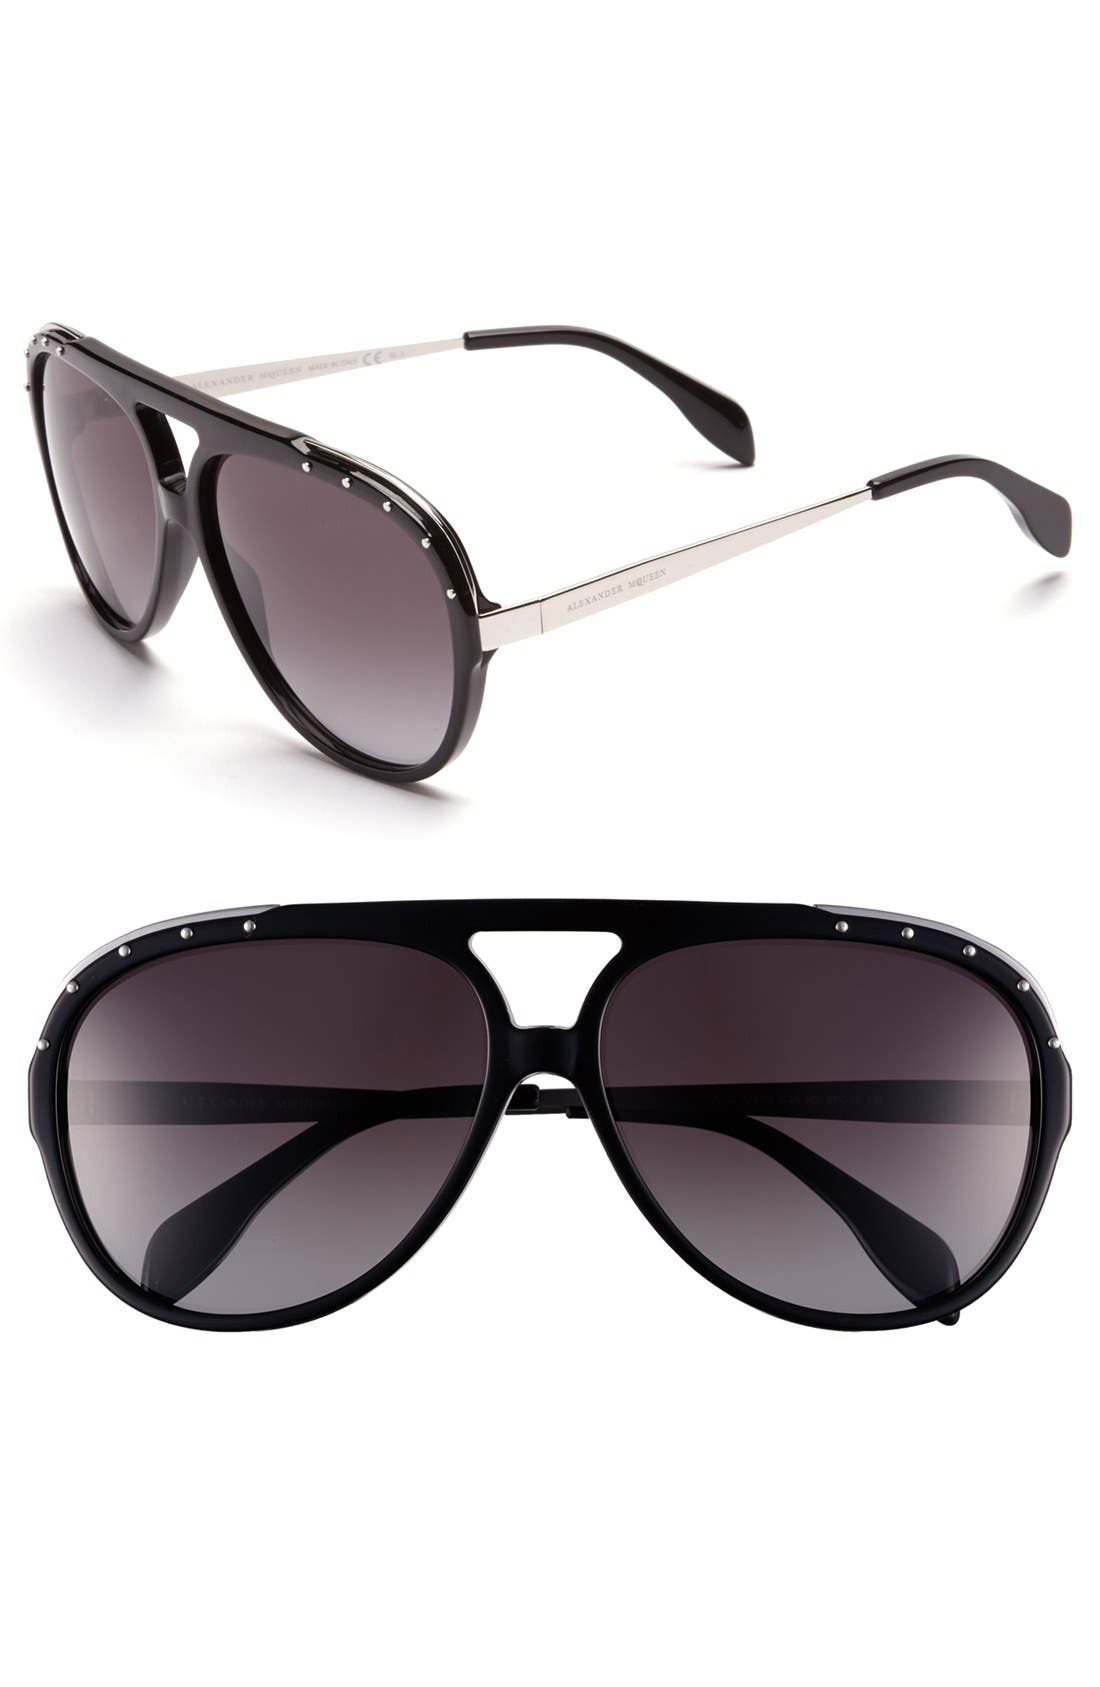 Alternate Image 1 Selected - Alexander McQueen 61mm Aviator Sunglasses